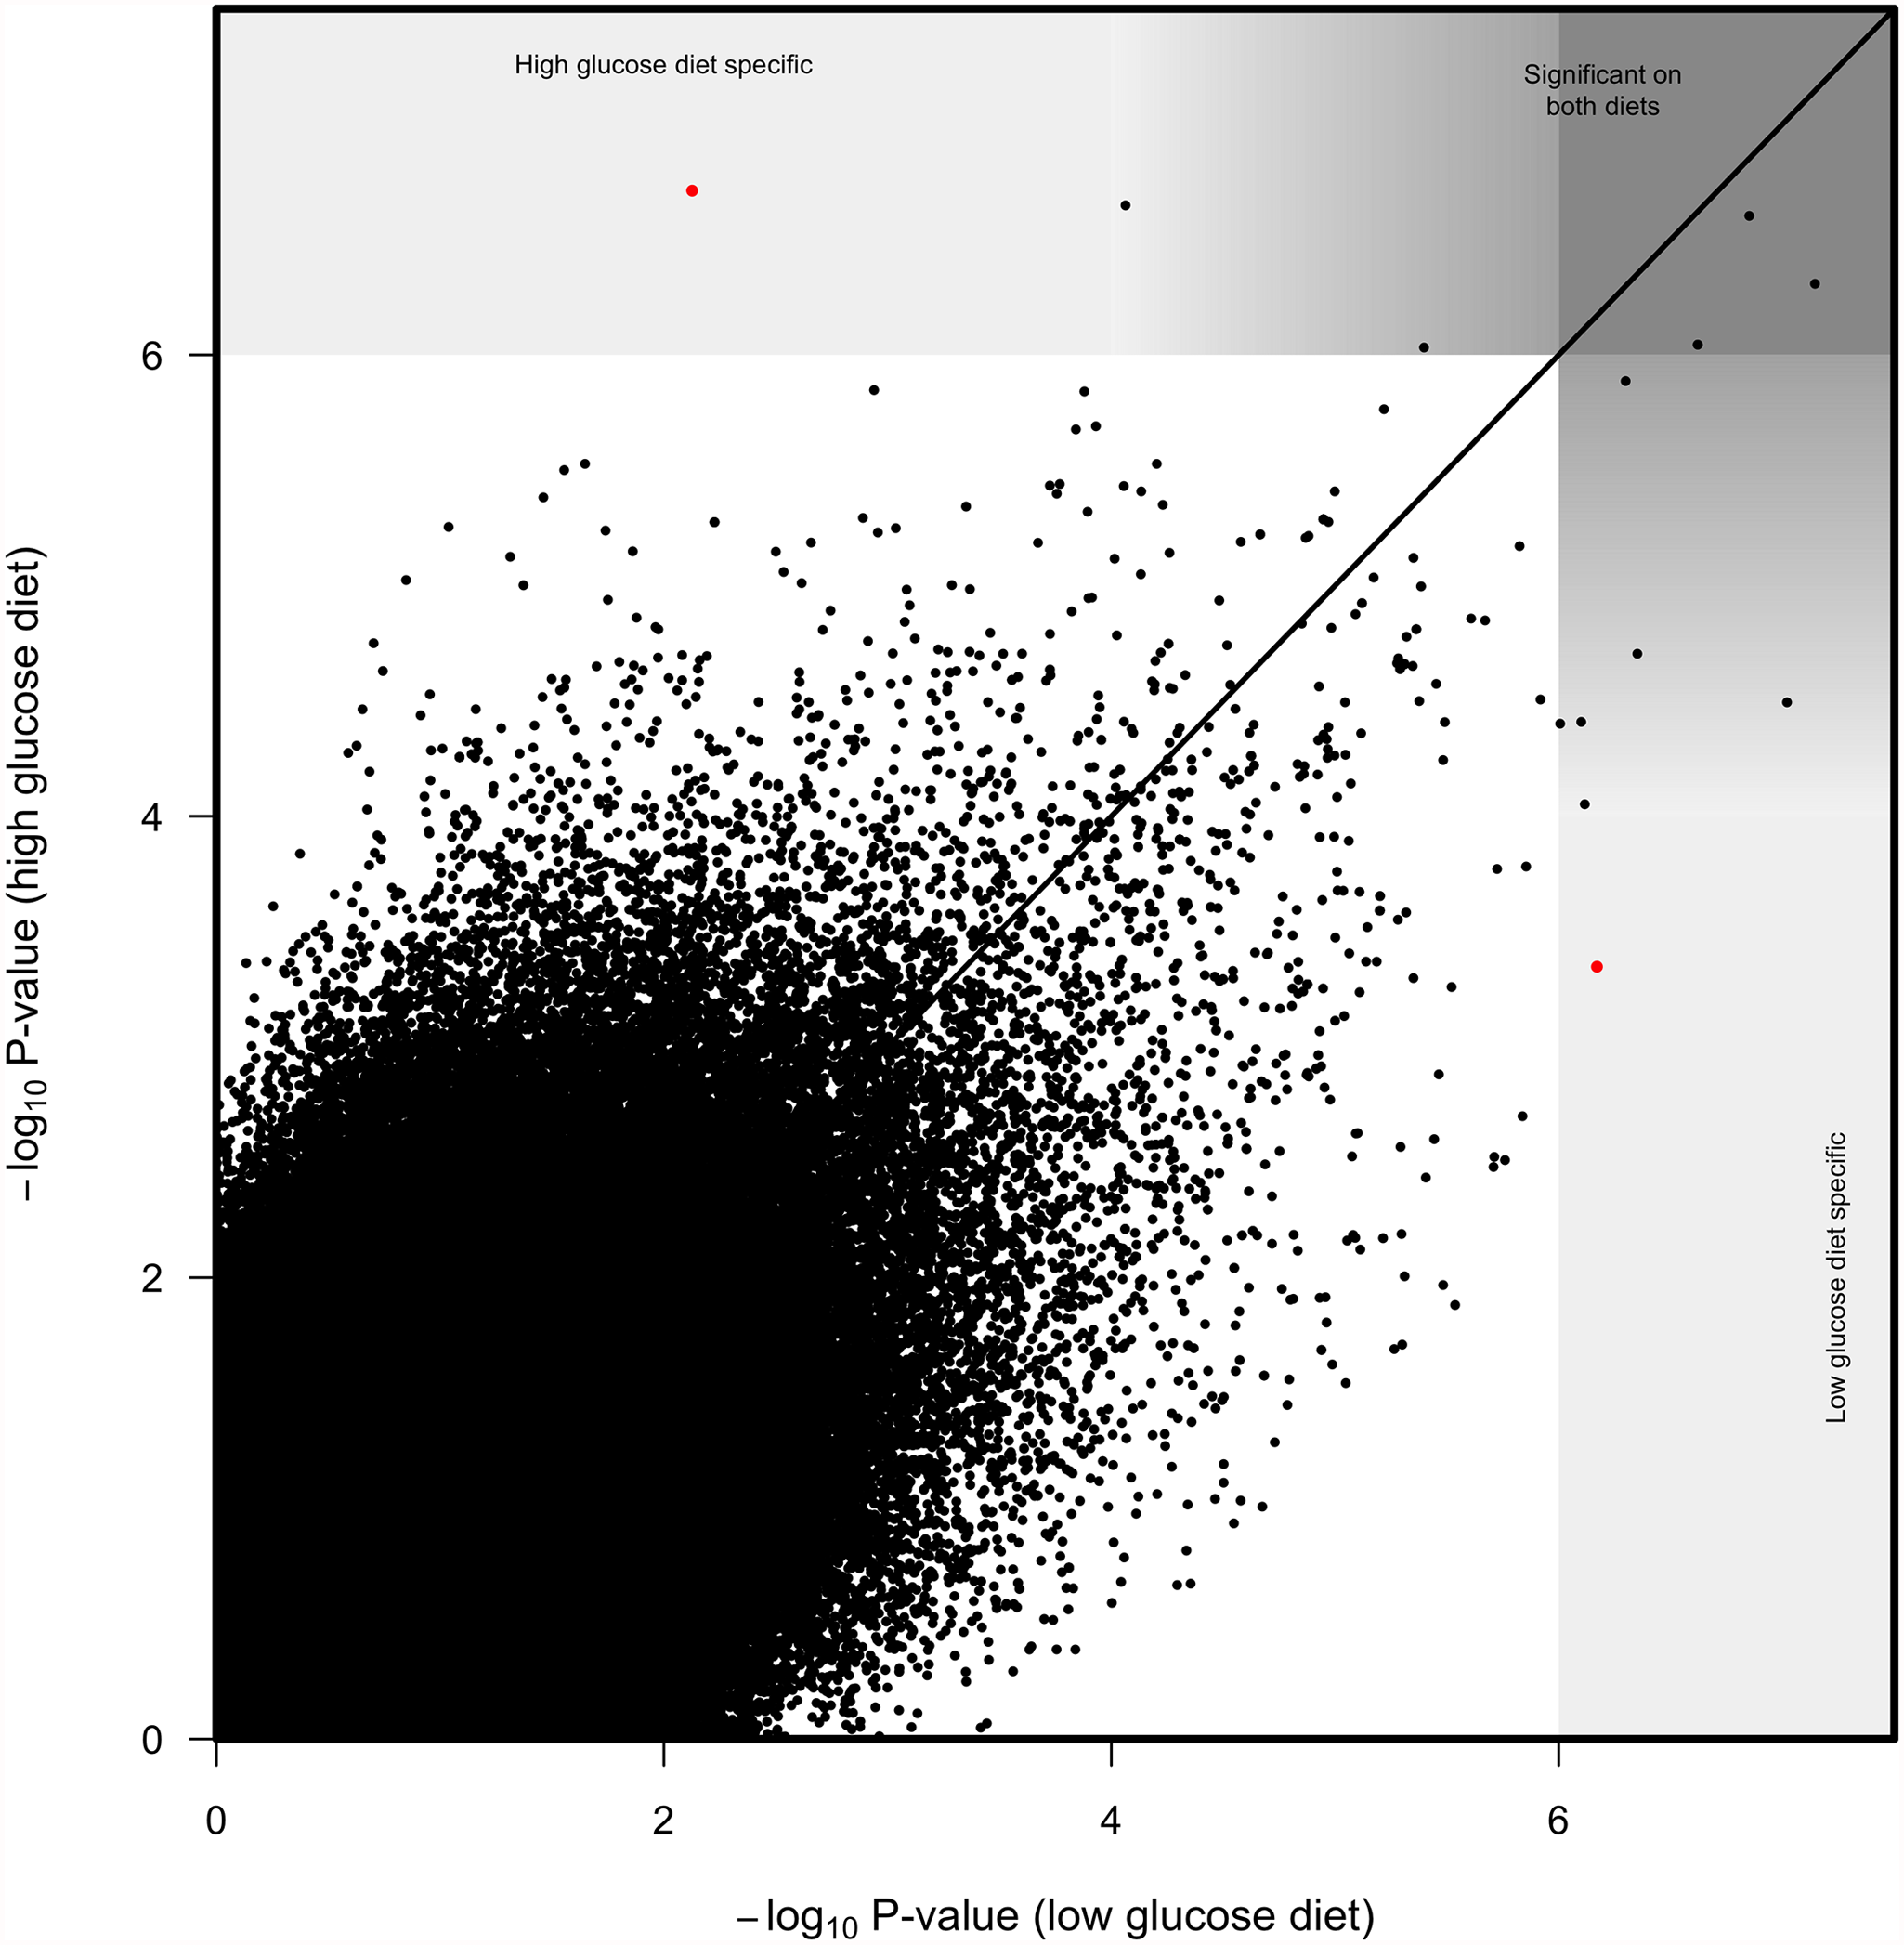 Correlation between SNP log<sub>10</sub> <i>p-</i>values from genome wide associations on high glucose diet and low glucose diet.